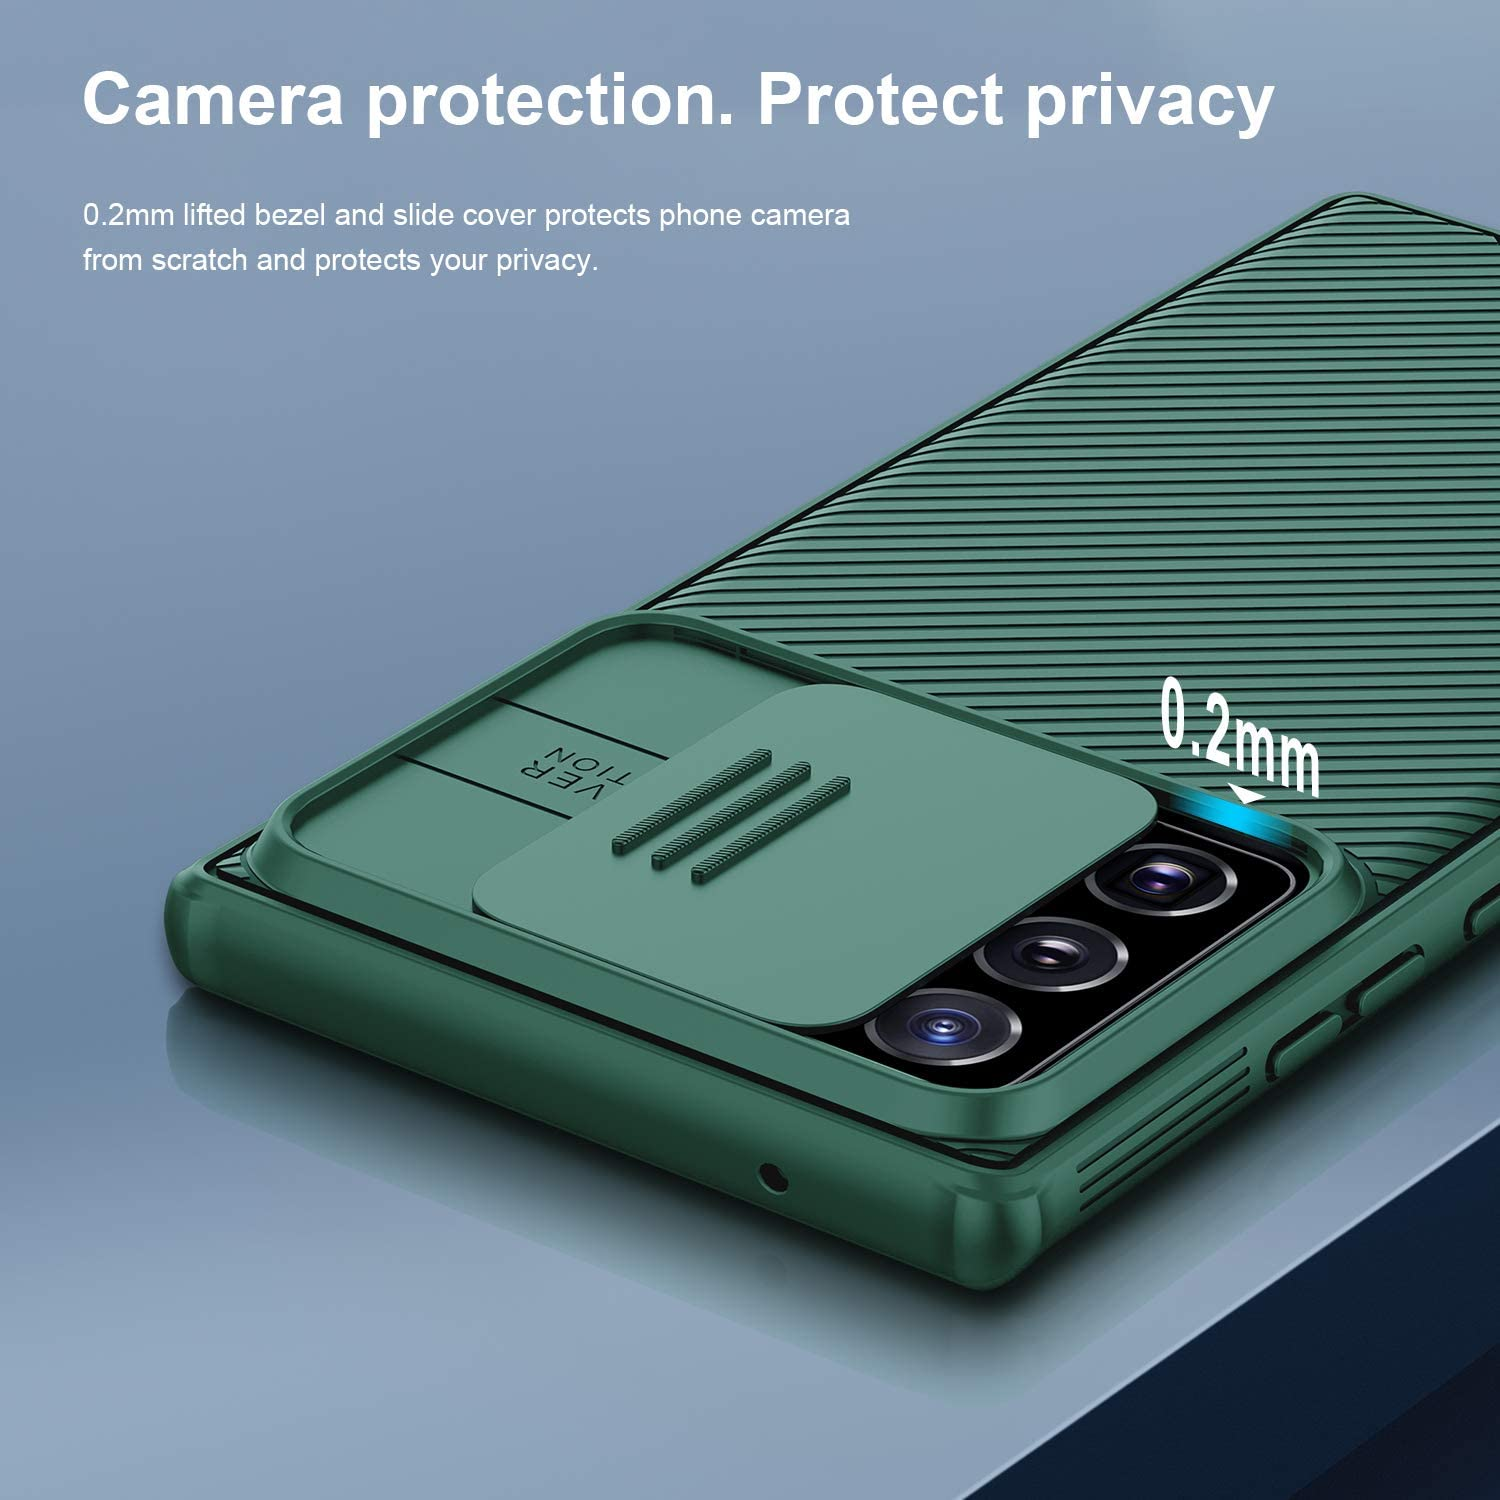 Nillkin Samsung Galaxy Note 20 Ultra Case, CamShield Pro Series Case with Slide Camera Cover, Slim Stylish Protective Case for Samsung Galaxy Note 20 Ultra 5G - Green